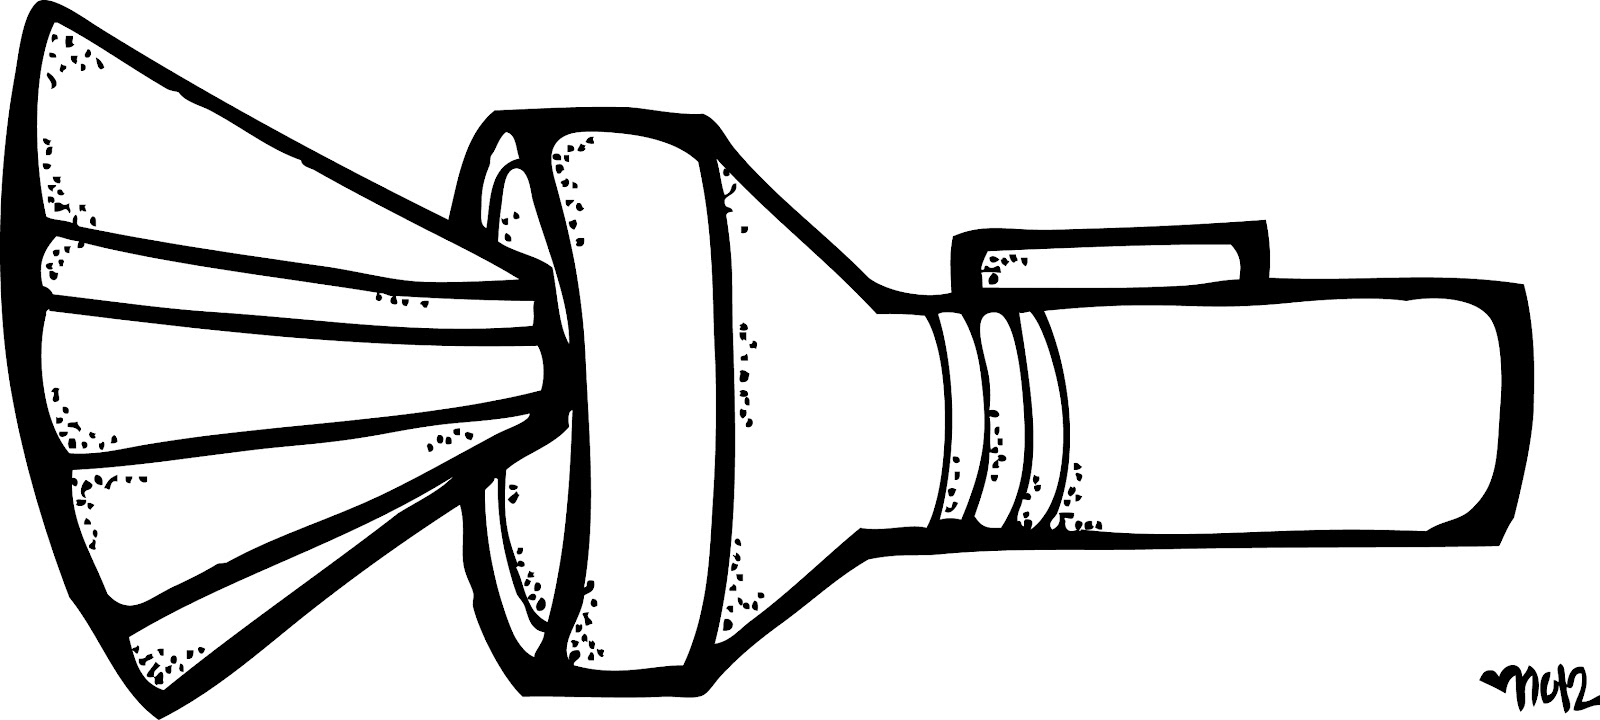 Free flash light cliparts. Flashlight clipart coloring page